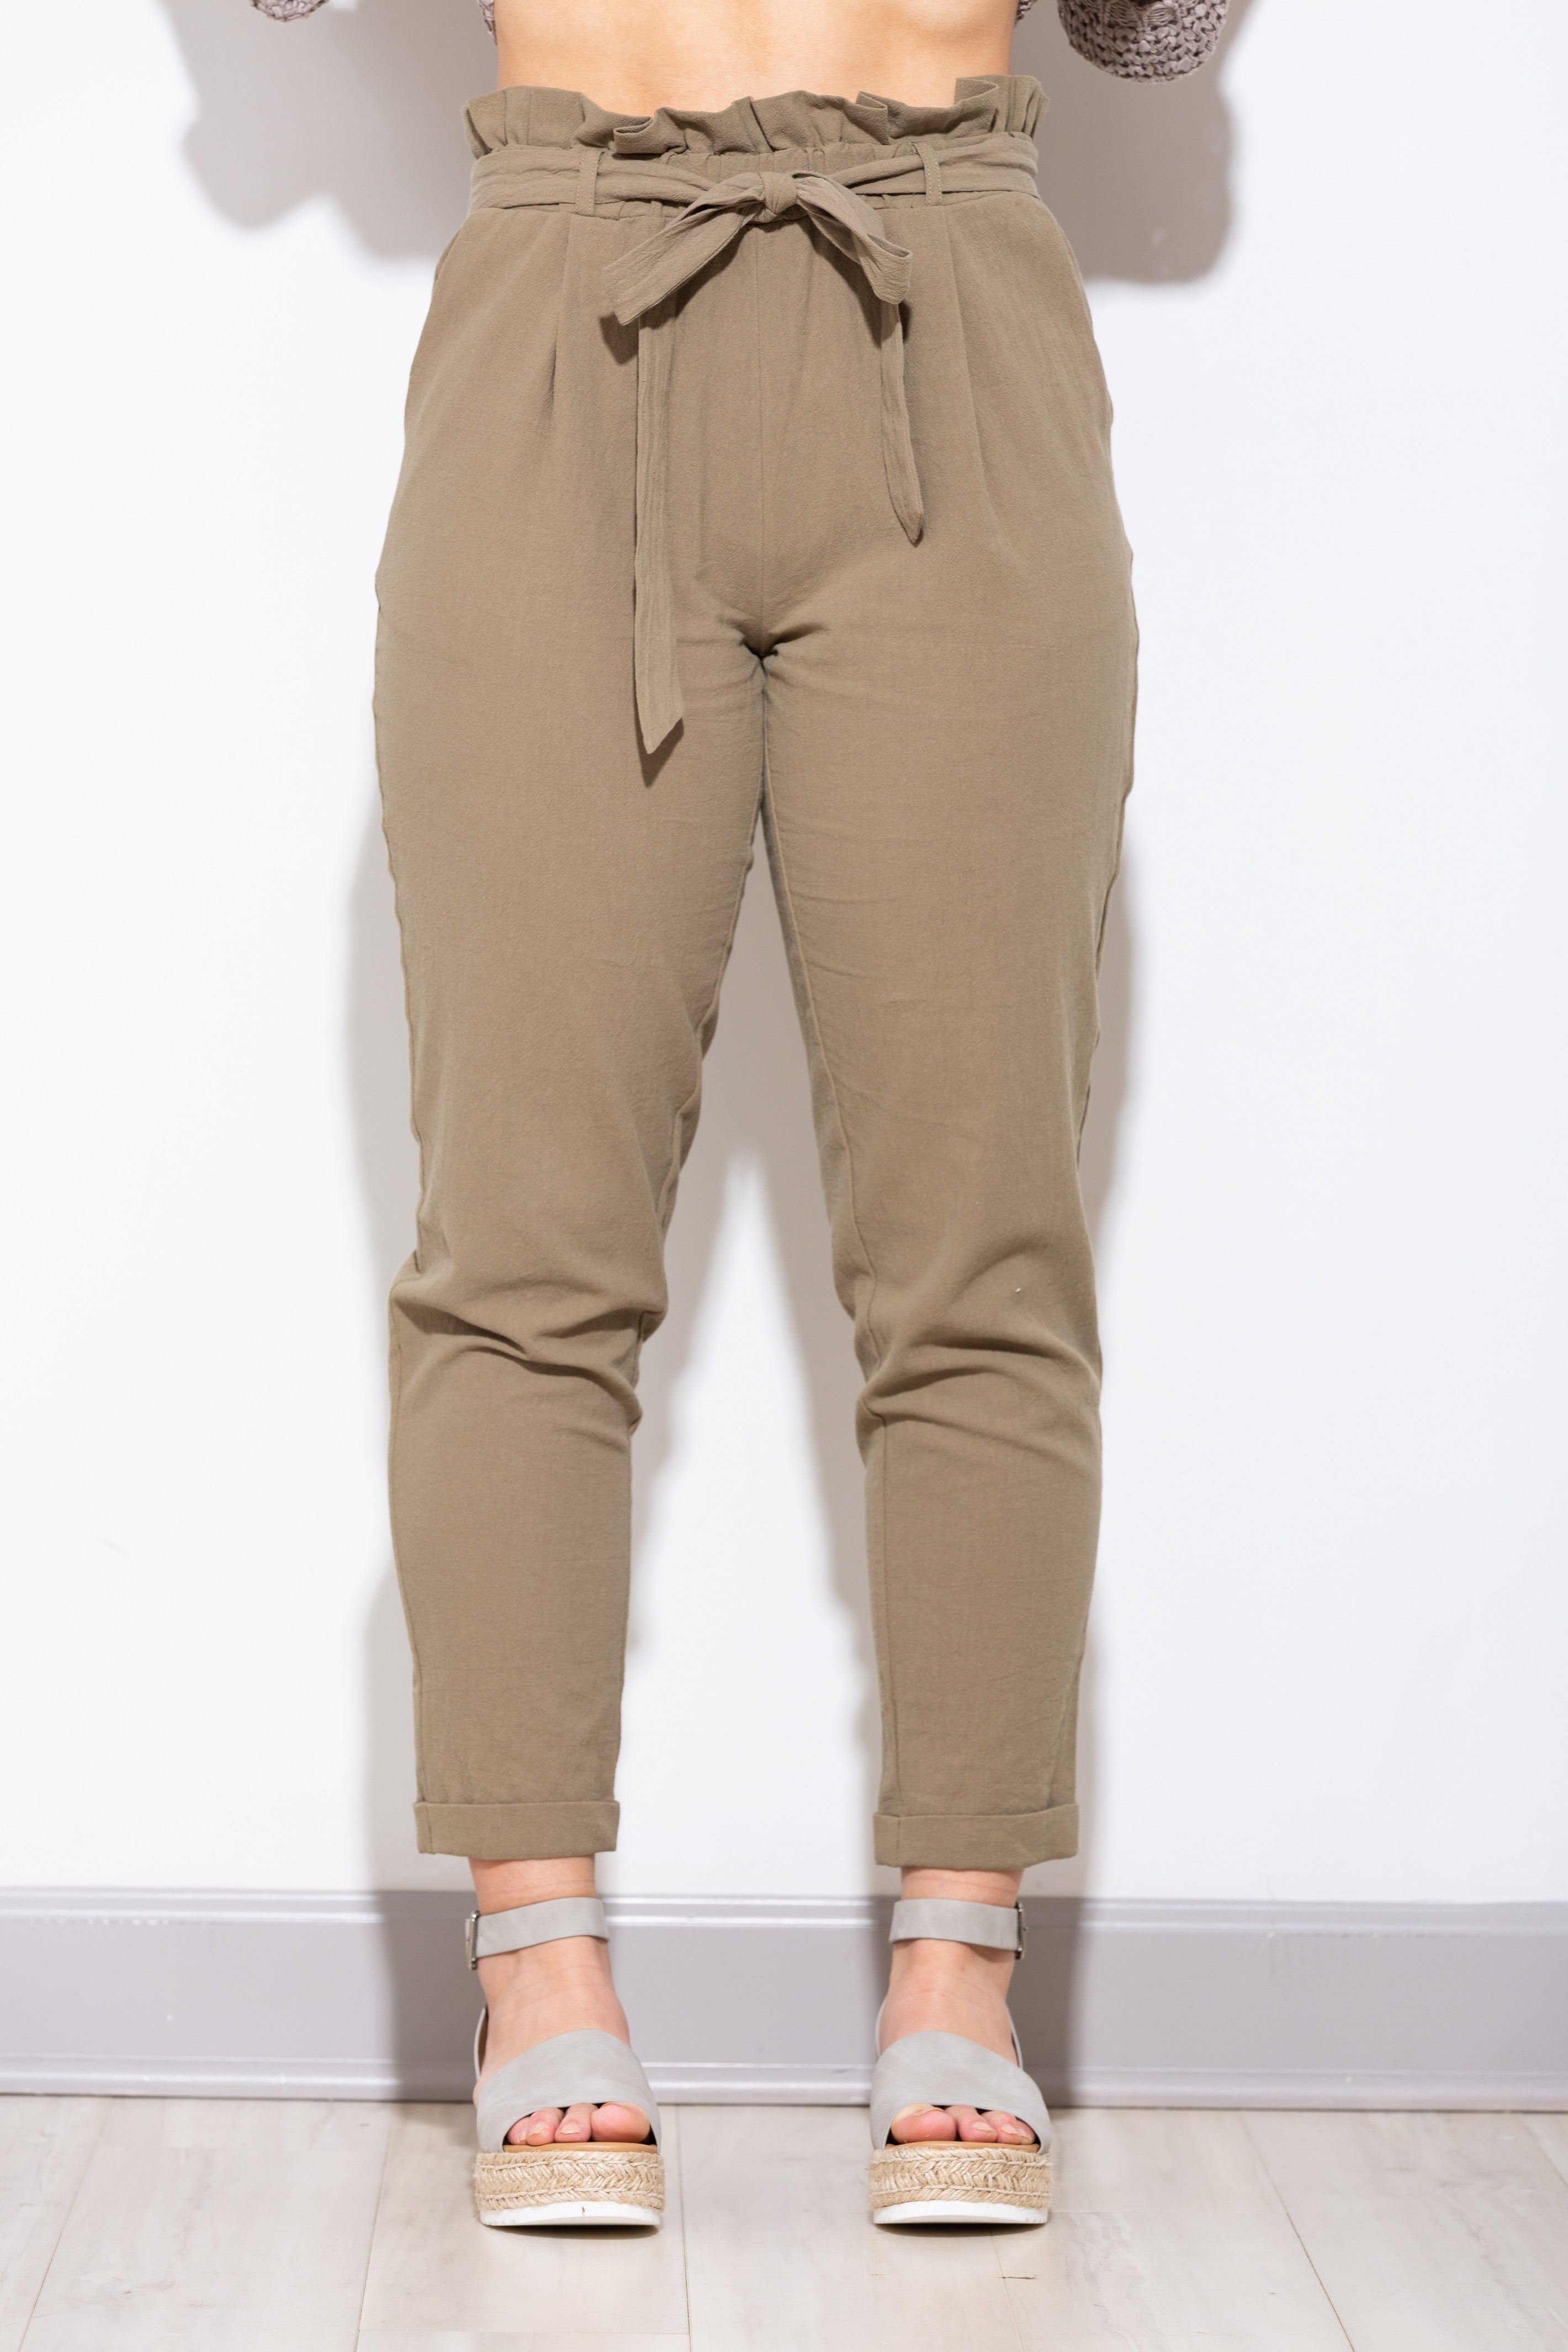 Close To You High-Waisted PaperBag Olive Pants - impromptu boutique